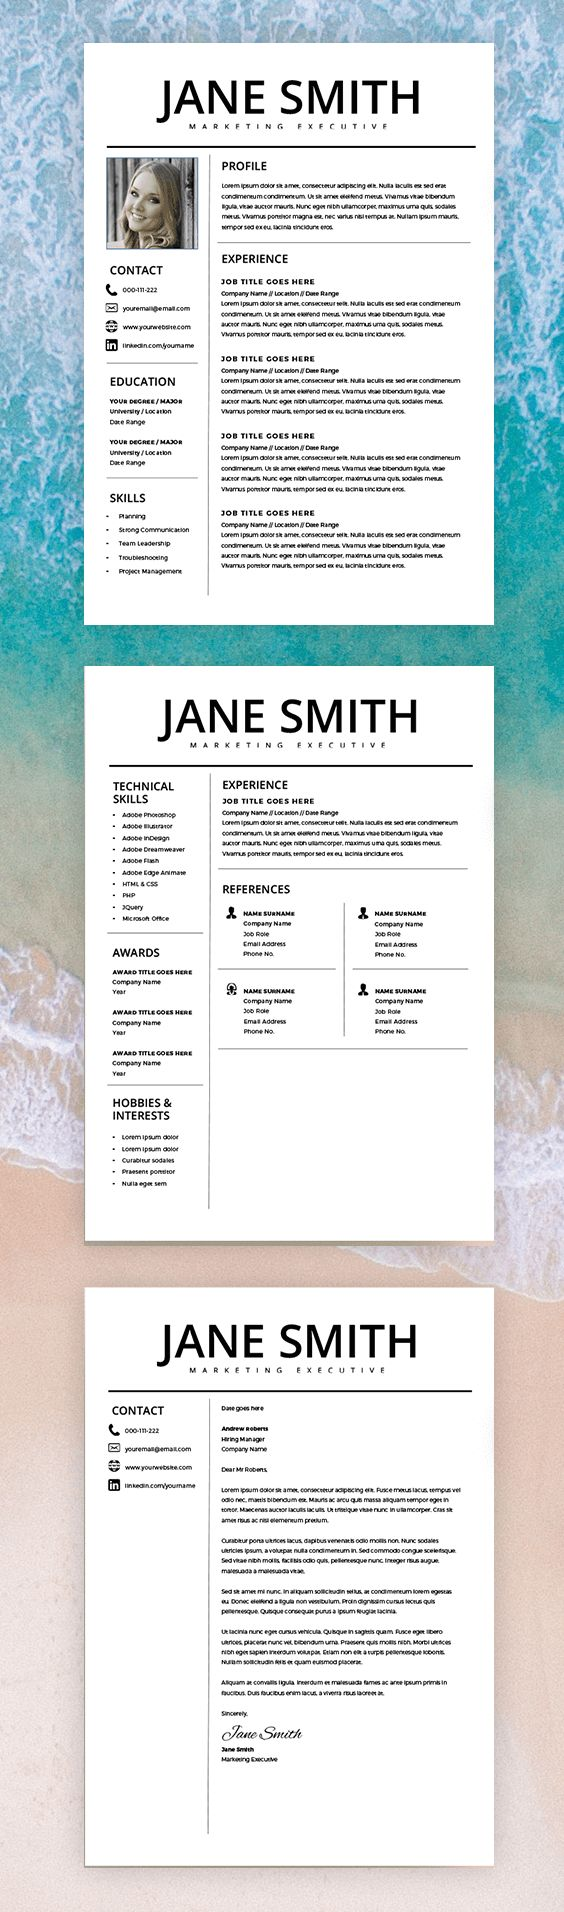 Professional Resume Template - Word & Page Compatible - Best CV Template - Free Cover Letter - Mac / PC - Sample - Instant Download